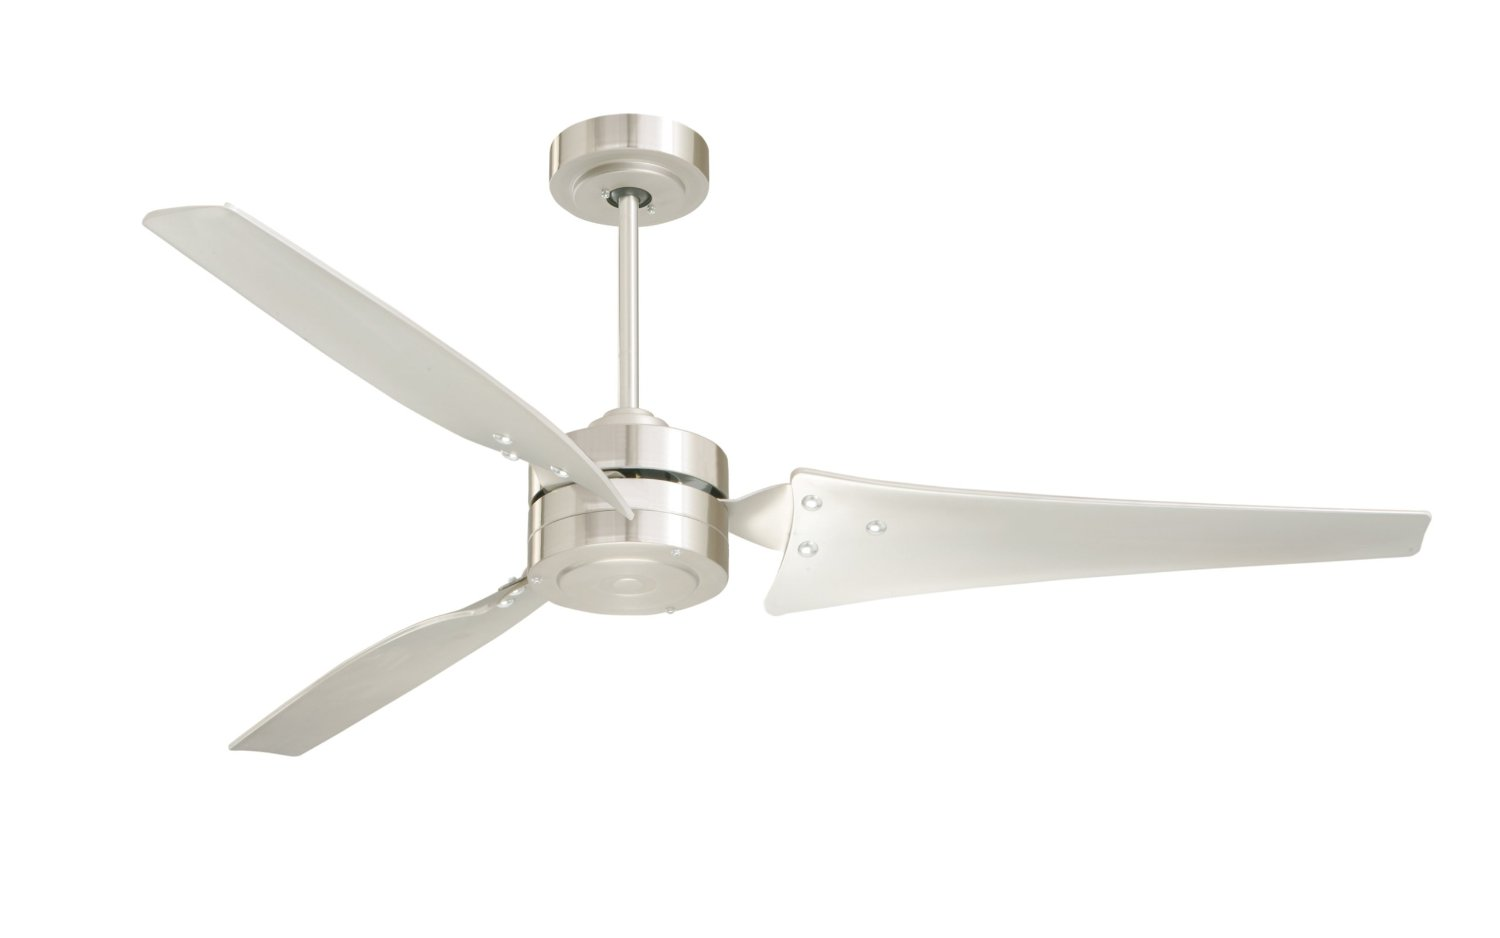 Outdoor Modern Fans 5 Best Emerson Ceiling Fans Tool Box